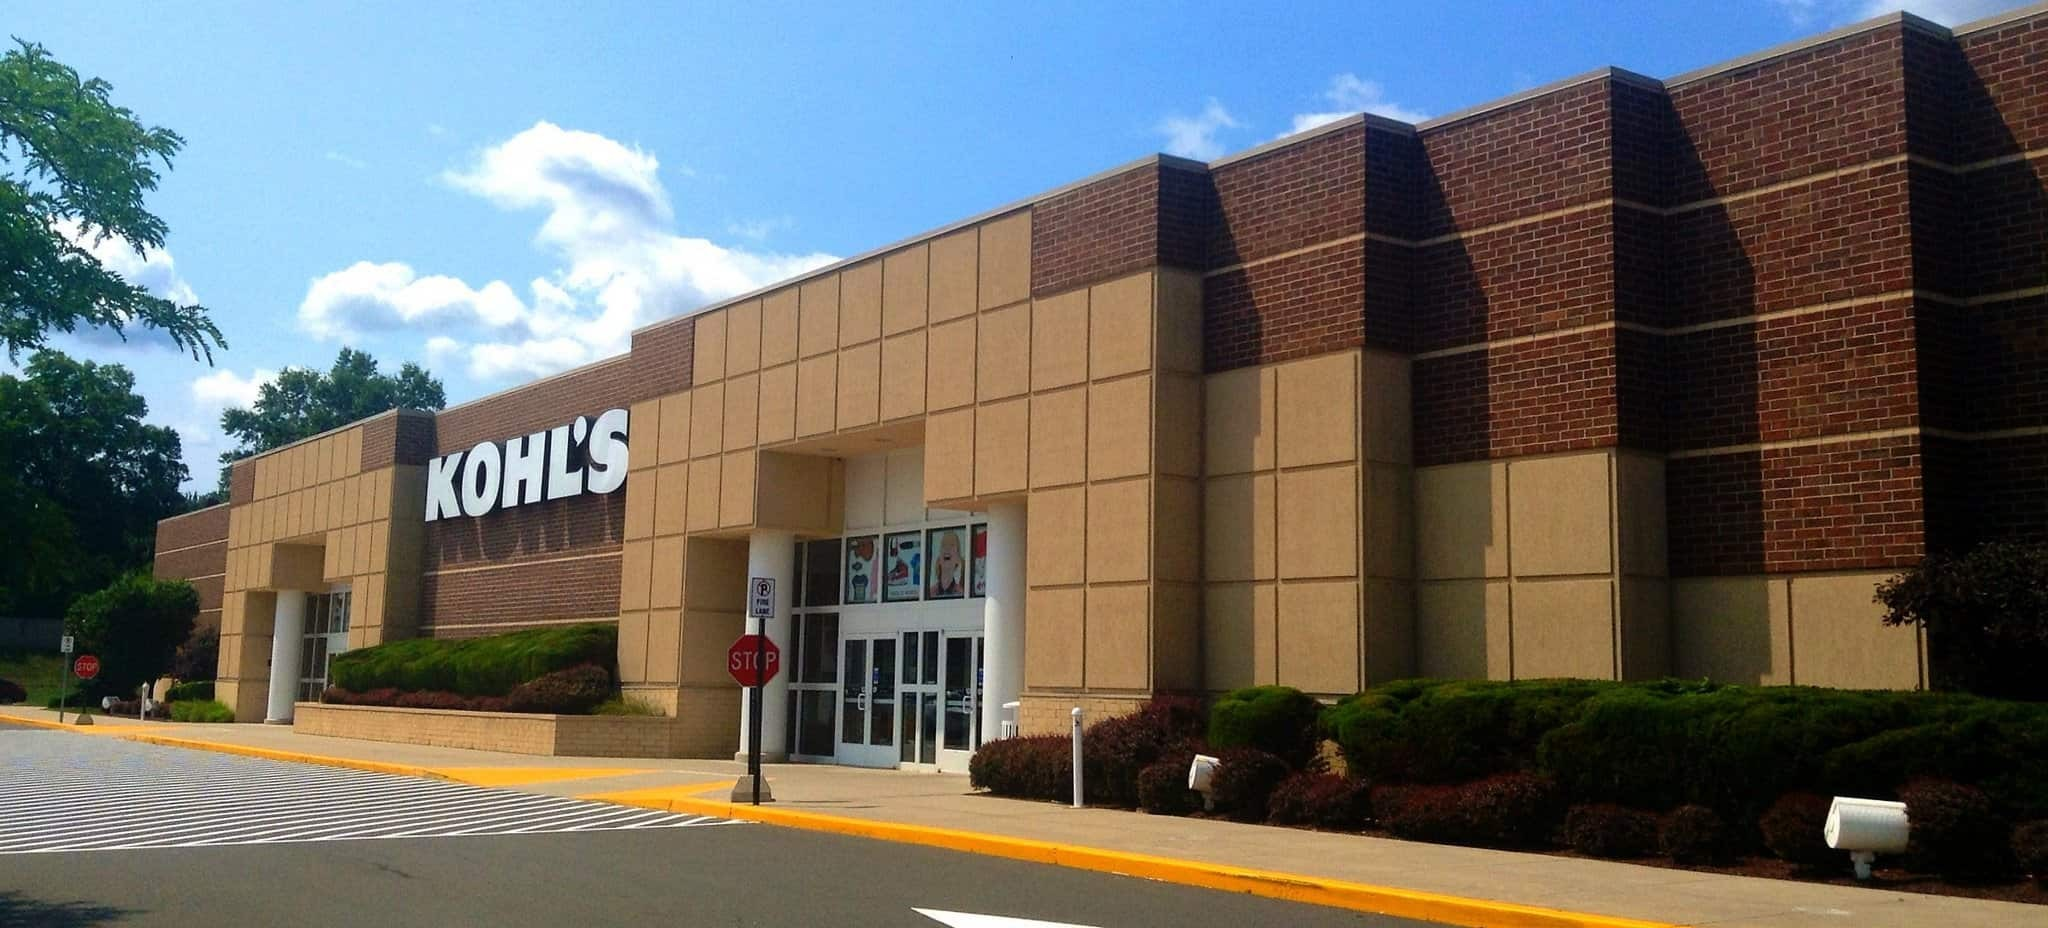 Is there a Kohls in England